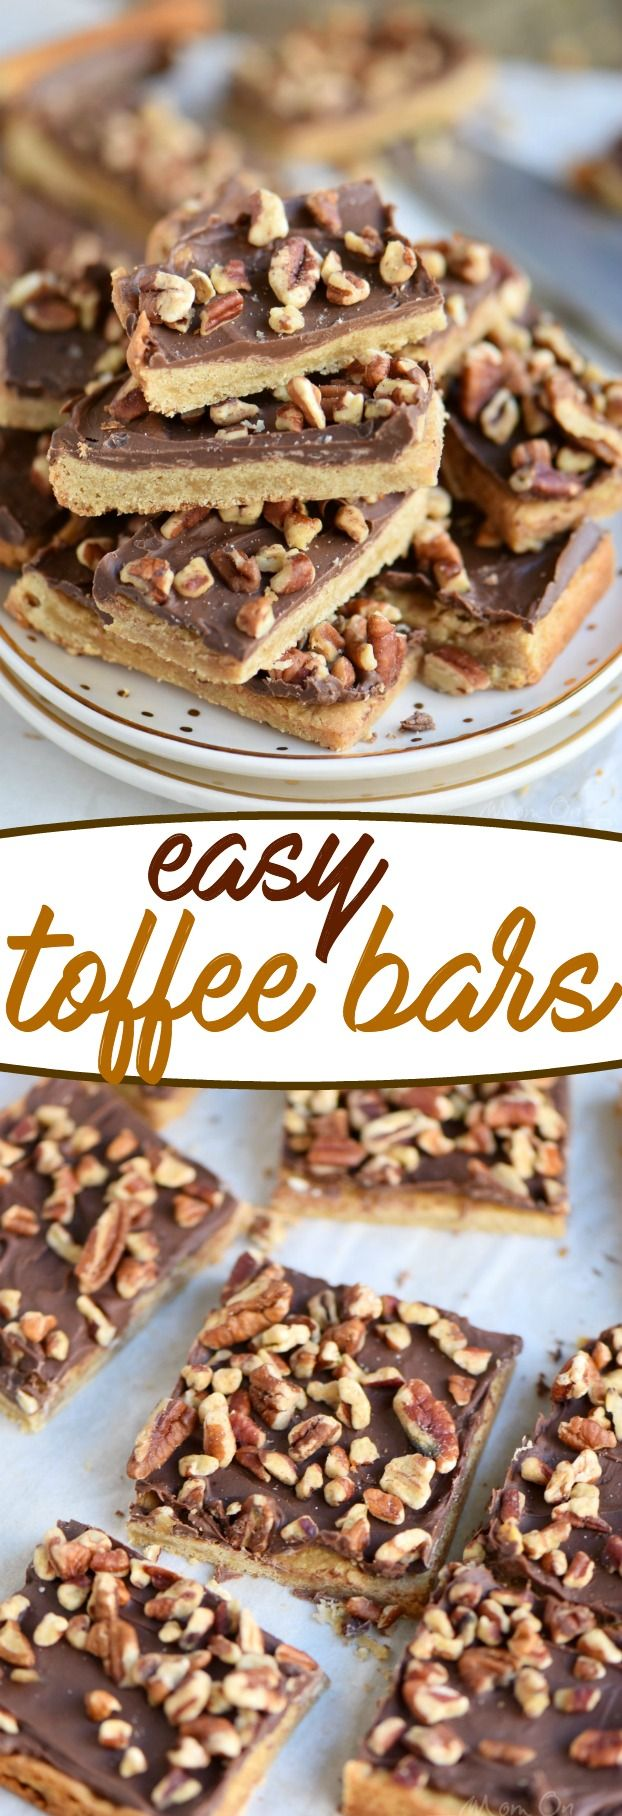 You're going to go crazy for these Easy Toffee Bars! Simply delicious cookie bars topped with milk chocolate and pecans! Just fantastic! // Mom On Timeout